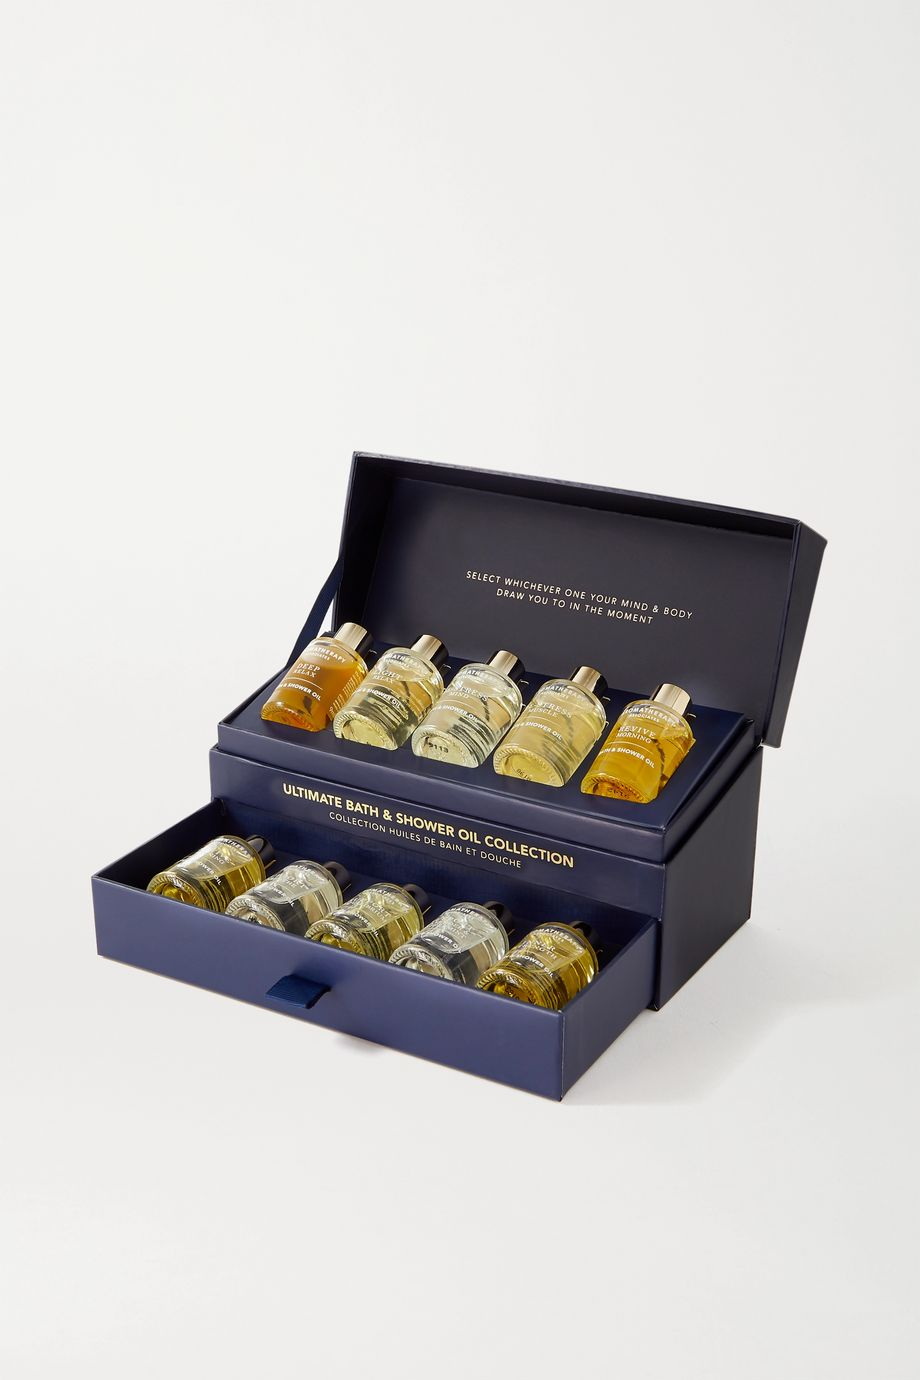 Aromatherapy Associates Ultimate Moments Bath & Shower Oil Collection, 10 x 9 ml – Badeset